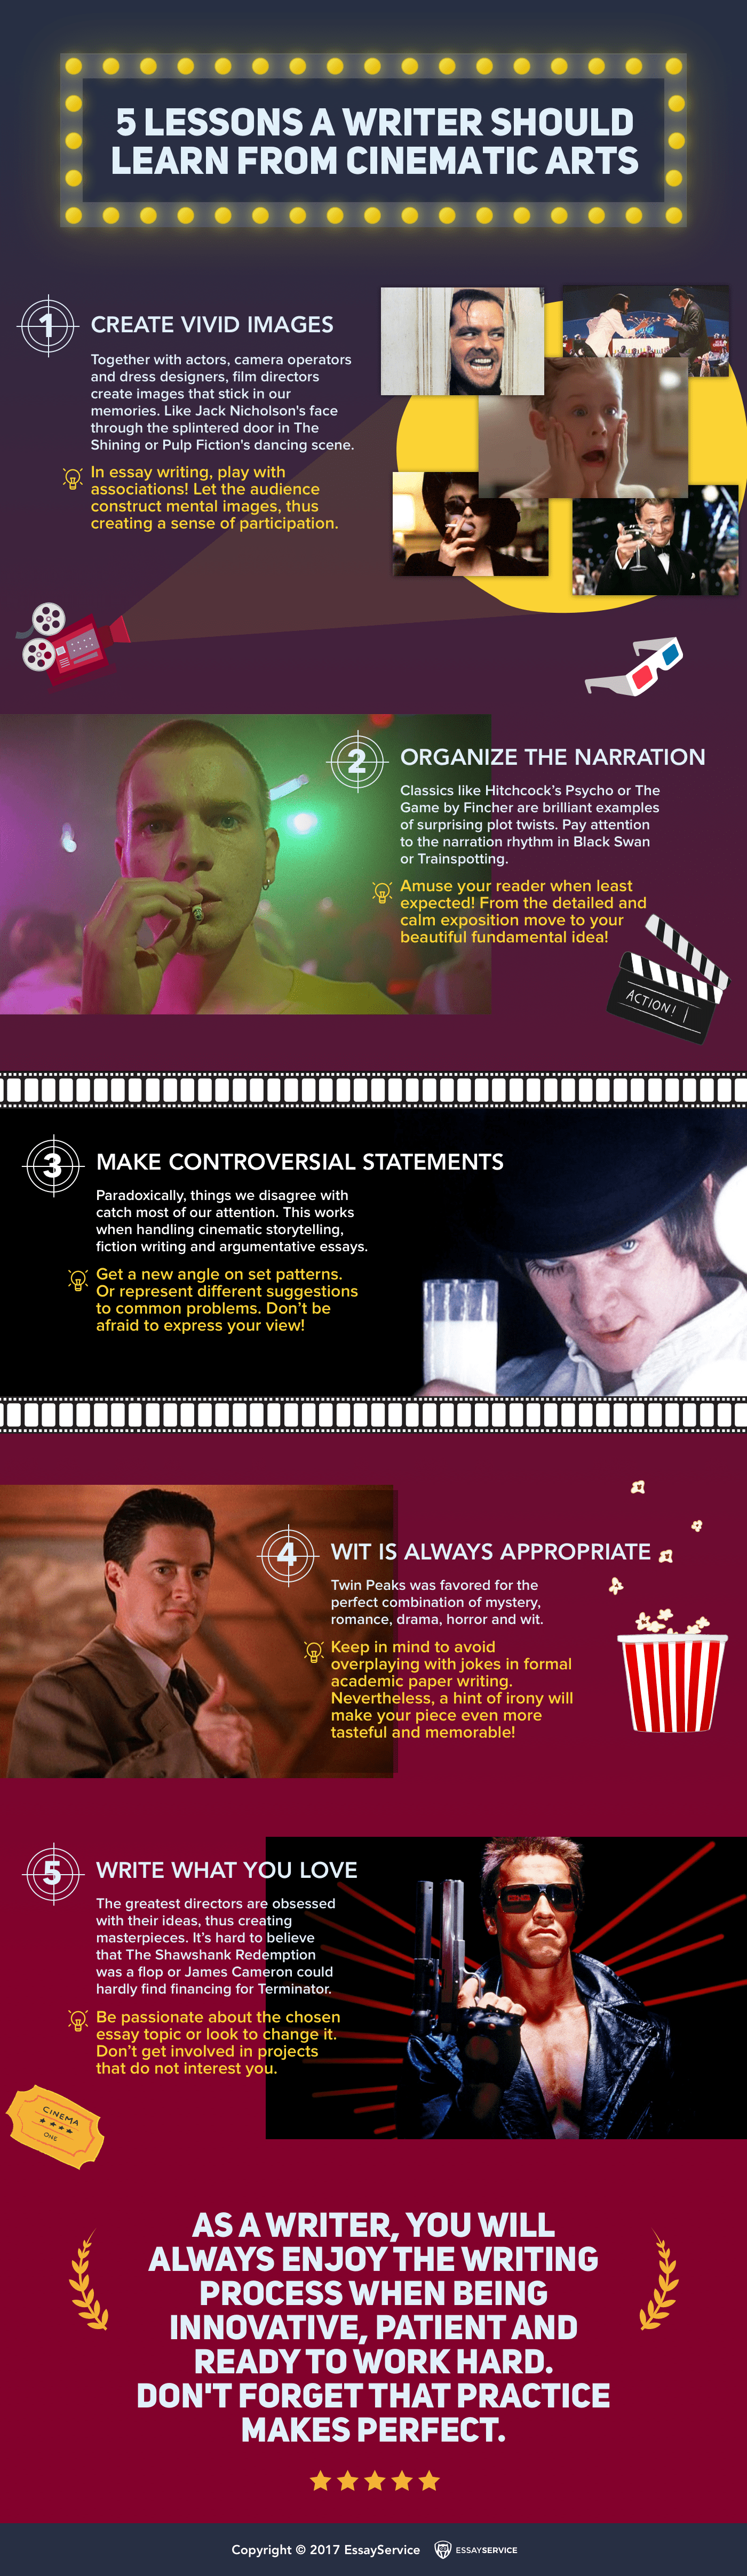 How Moves Can Influence Writing: 5 Lessons from Cinematic Arts - Infographic